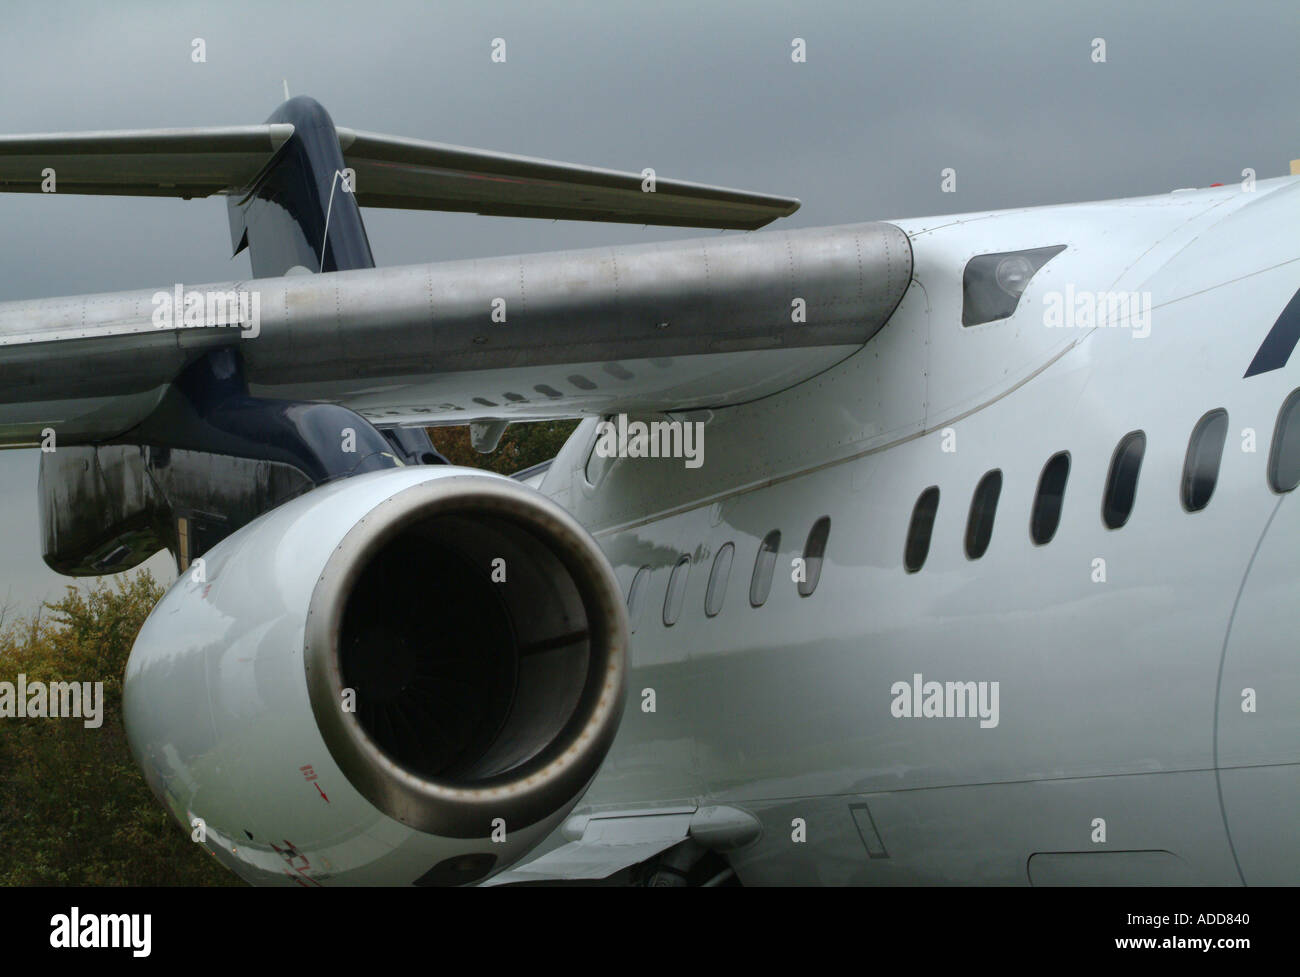 BAe Avro RJ100 Airliner on Static Display at Manchester Airport England United Kingdom UK - Stock Image